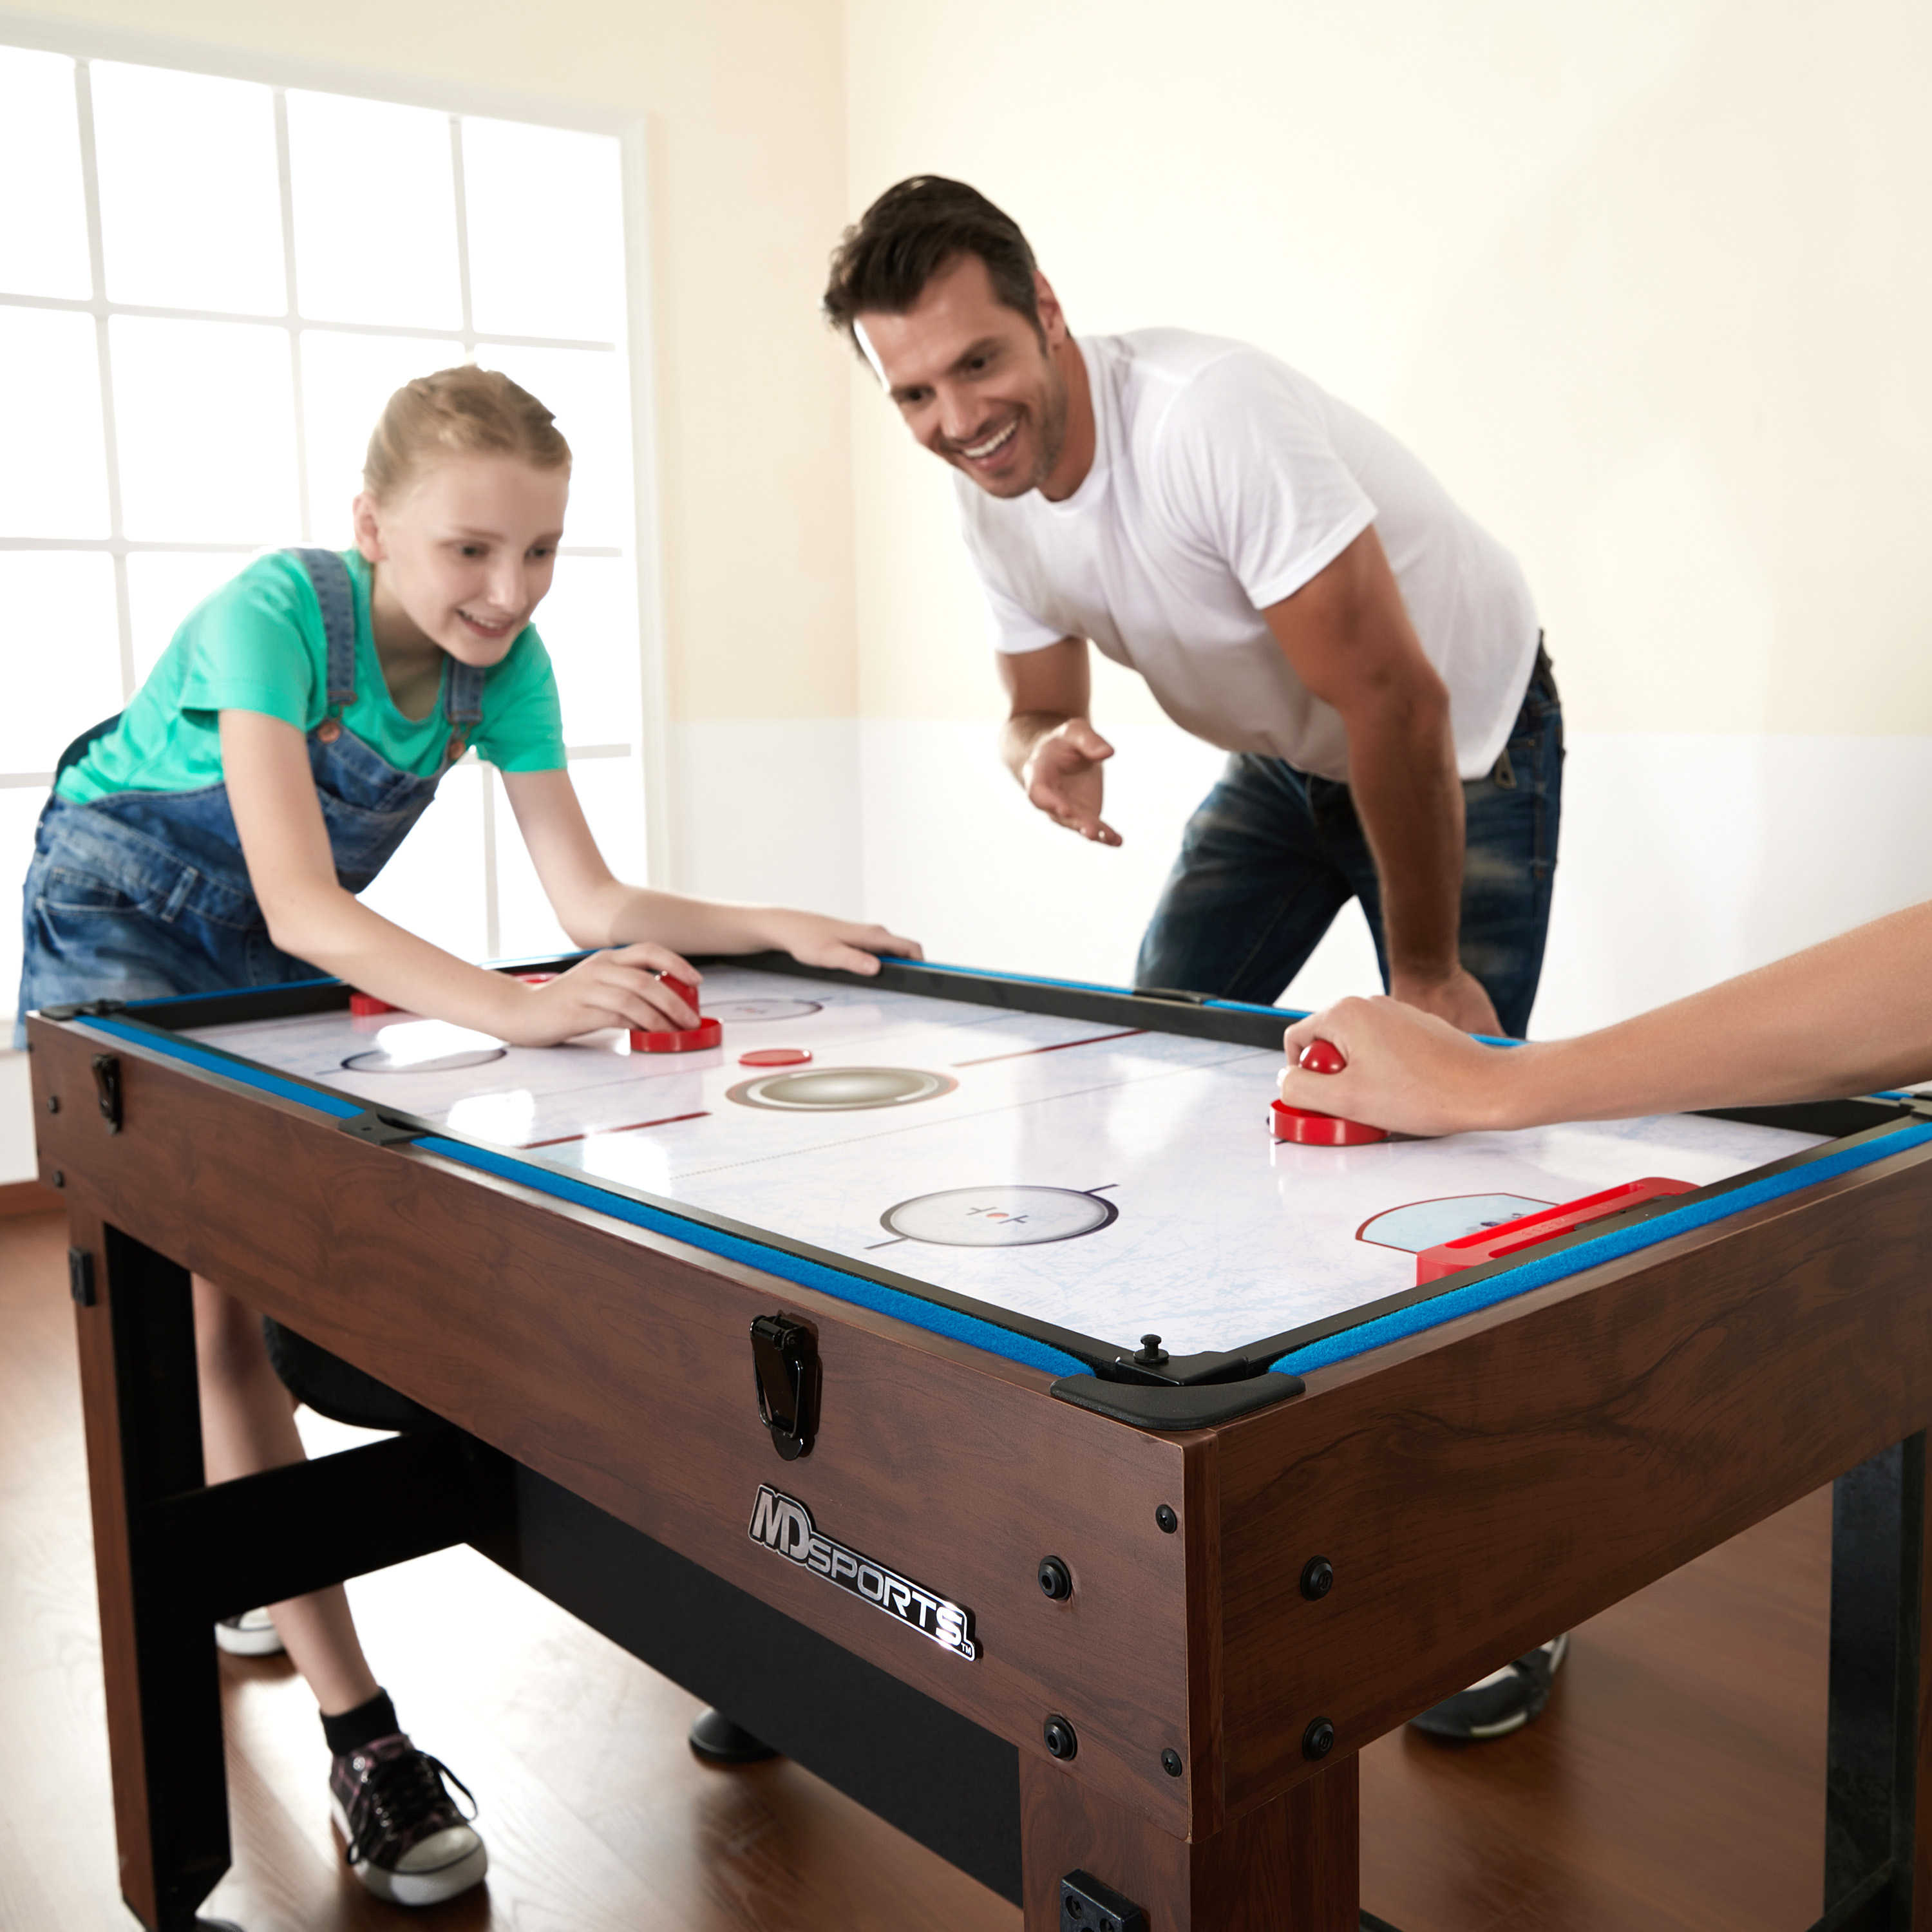 ... Hockey MD Sports 54 Inch 4 In 1 Combo Game Table, Foosball, ...